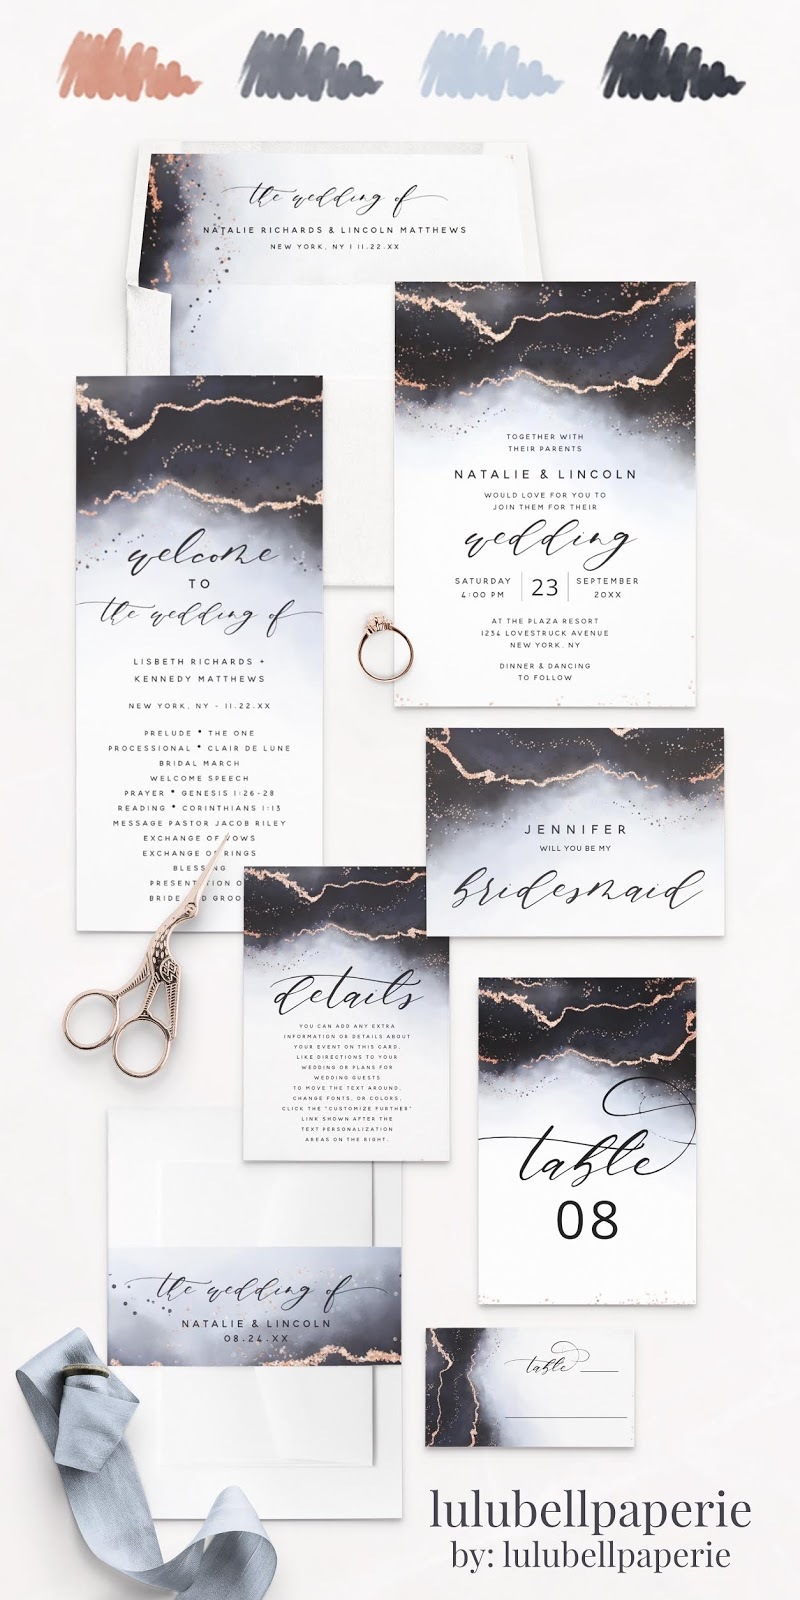 Dusty Blue Rose Gold and Navy Ethereal Mist Wedding Invitation Suite - Envelope Liners, Wedding Invites, Program Cards, Bridesmaid Proposal, Details Card, table Numbers, Belly Band Wraps, and Placecards